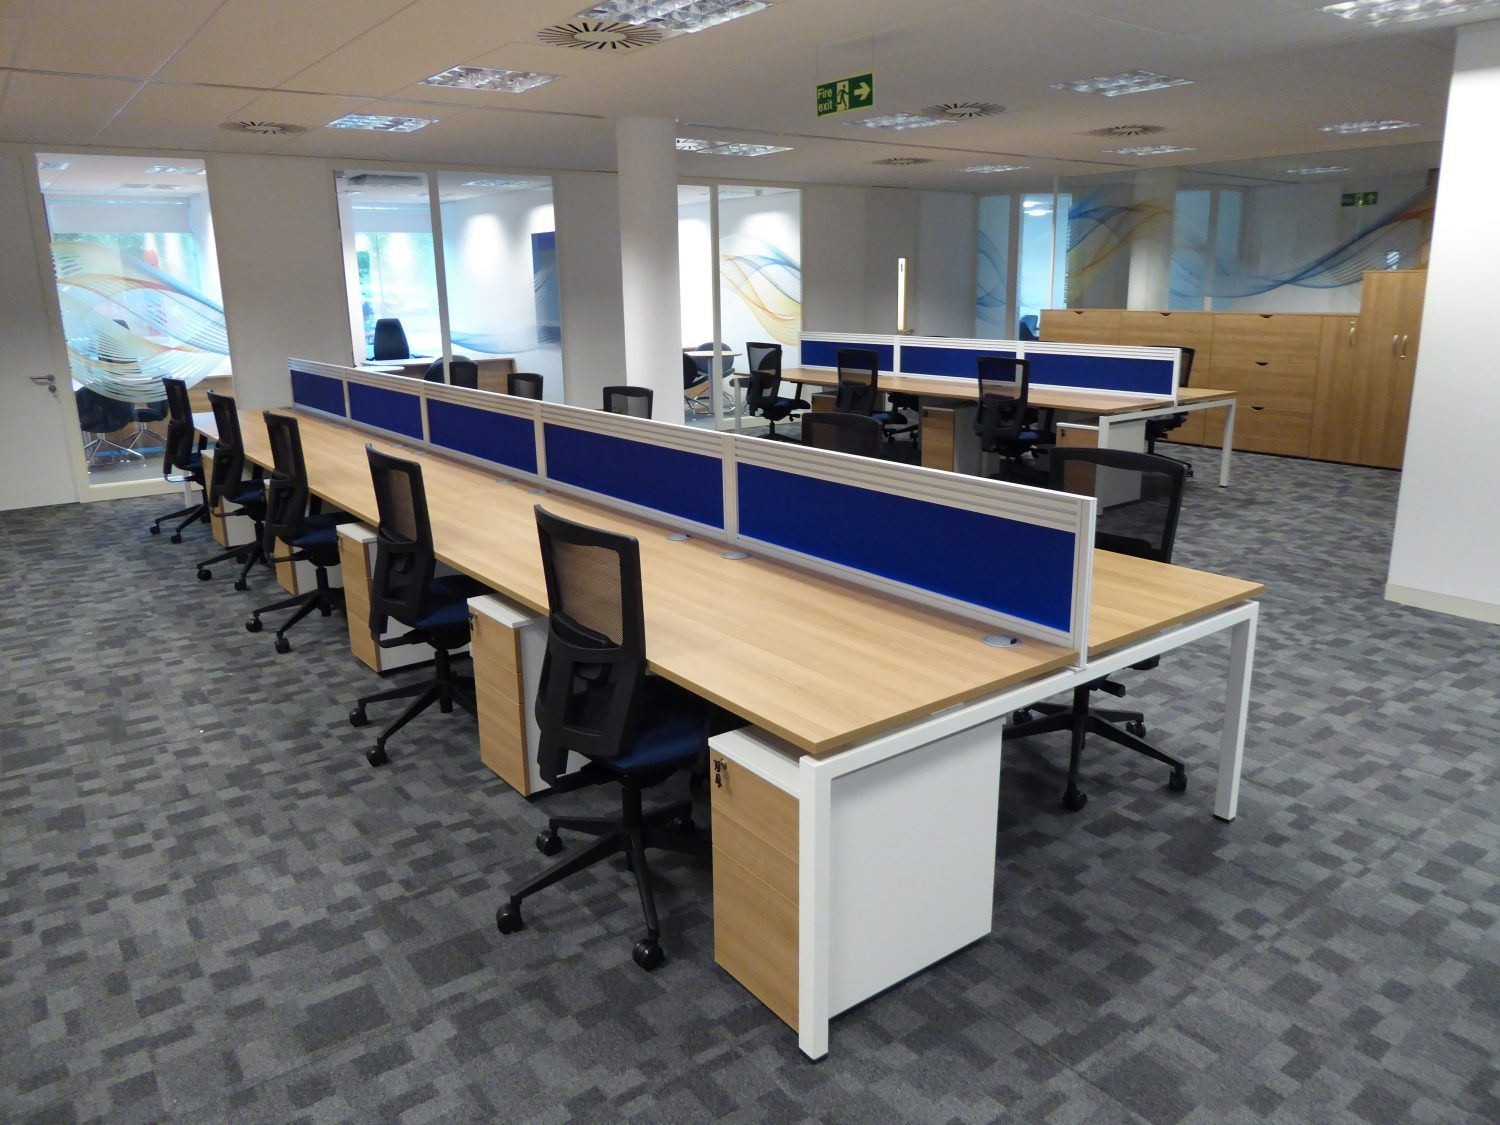 New Open Plan Office E With Blue Desk Dividers Separating The Furniture Bellway Plc